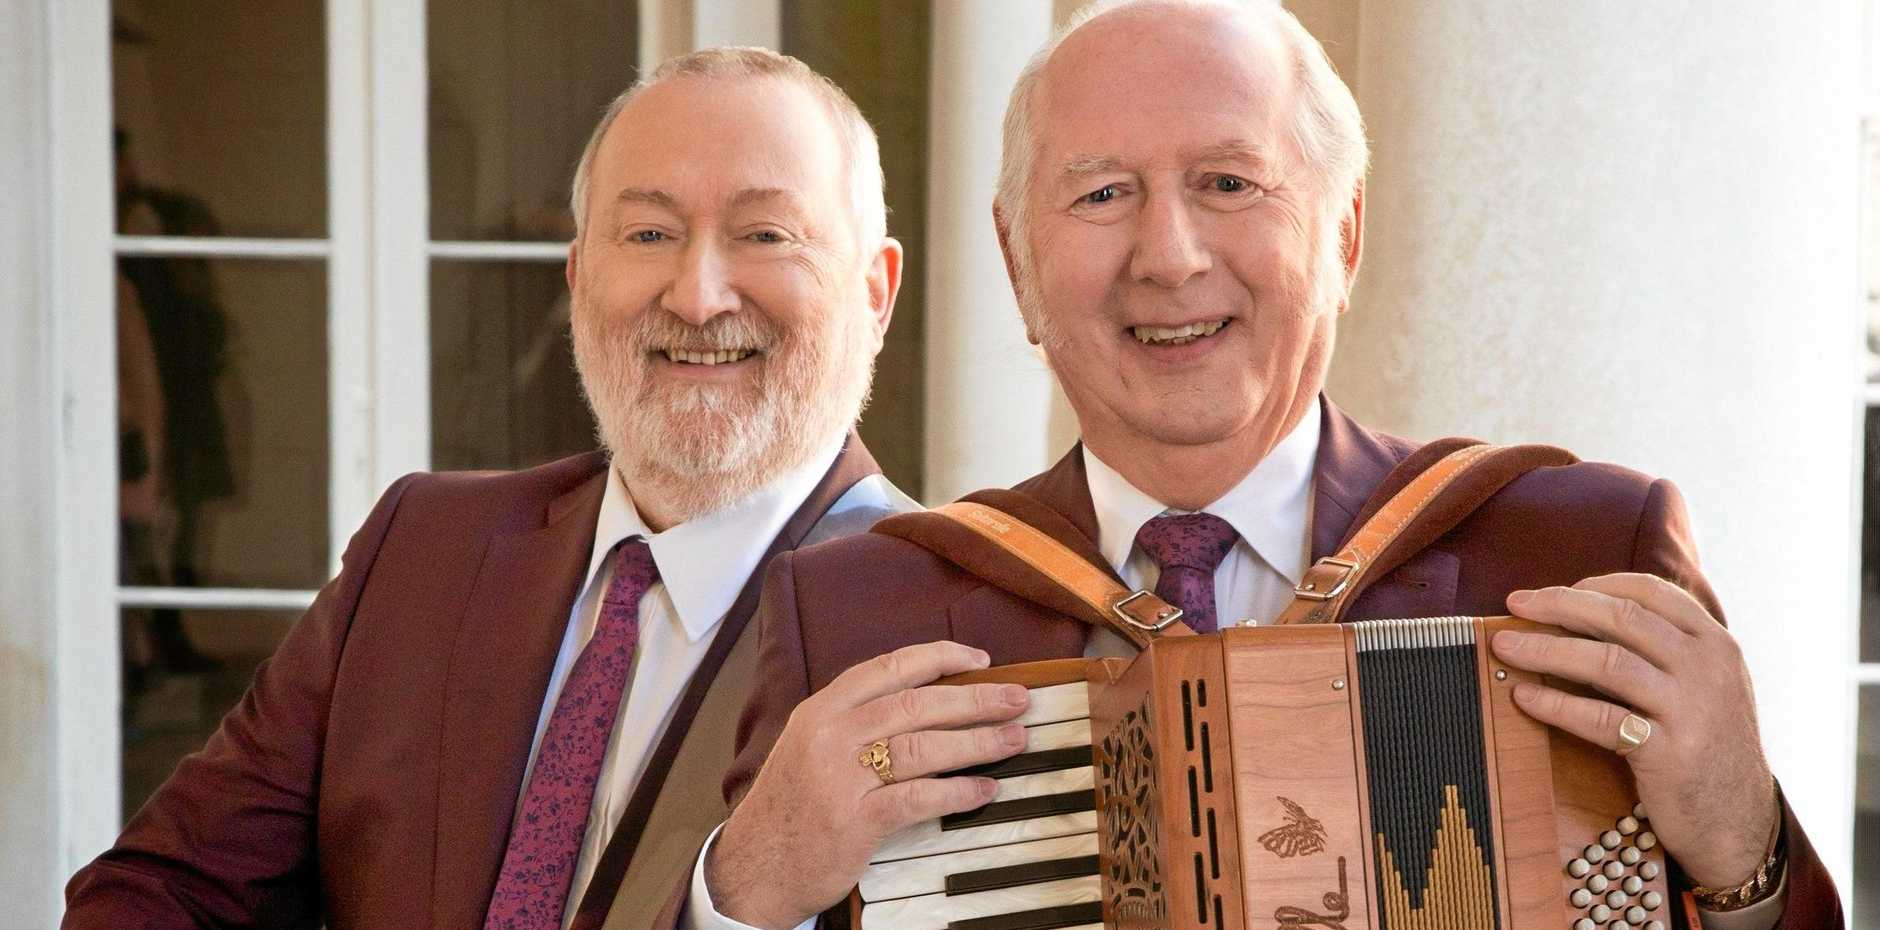 Irish duo Foster and Allen is back for a milestone 20th tour of Australia.